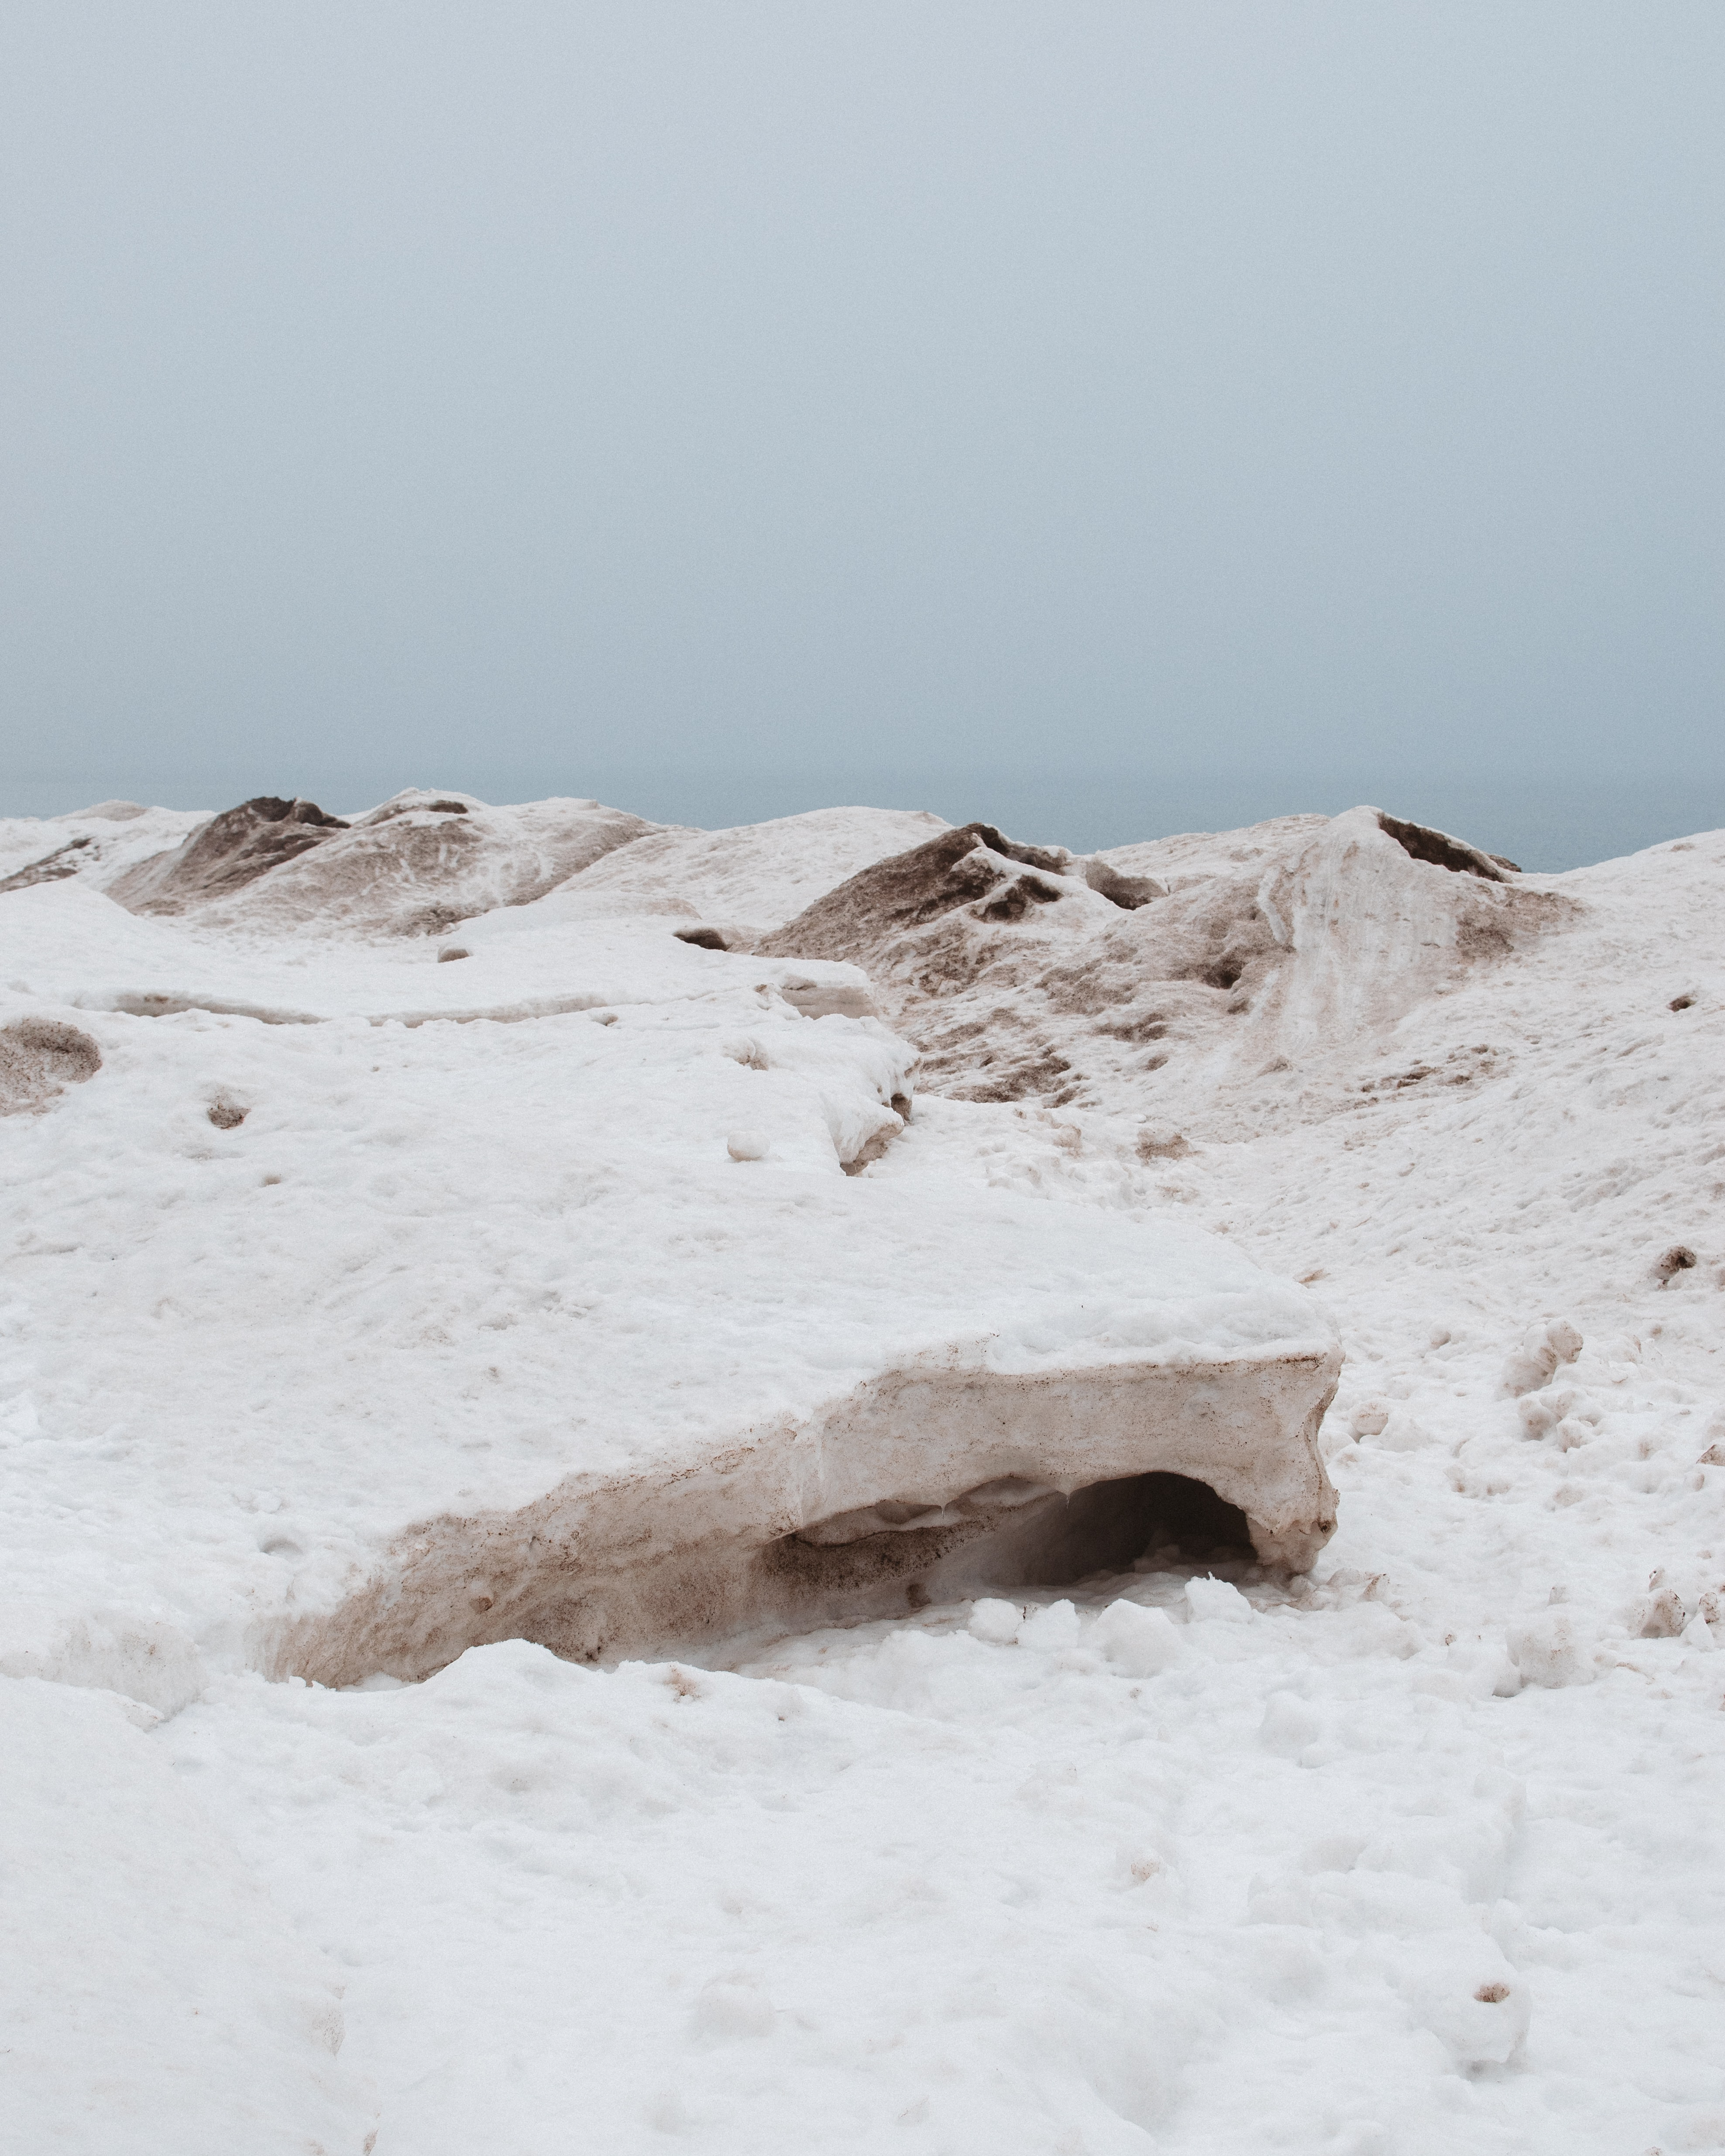 landscape photography of snowy hills